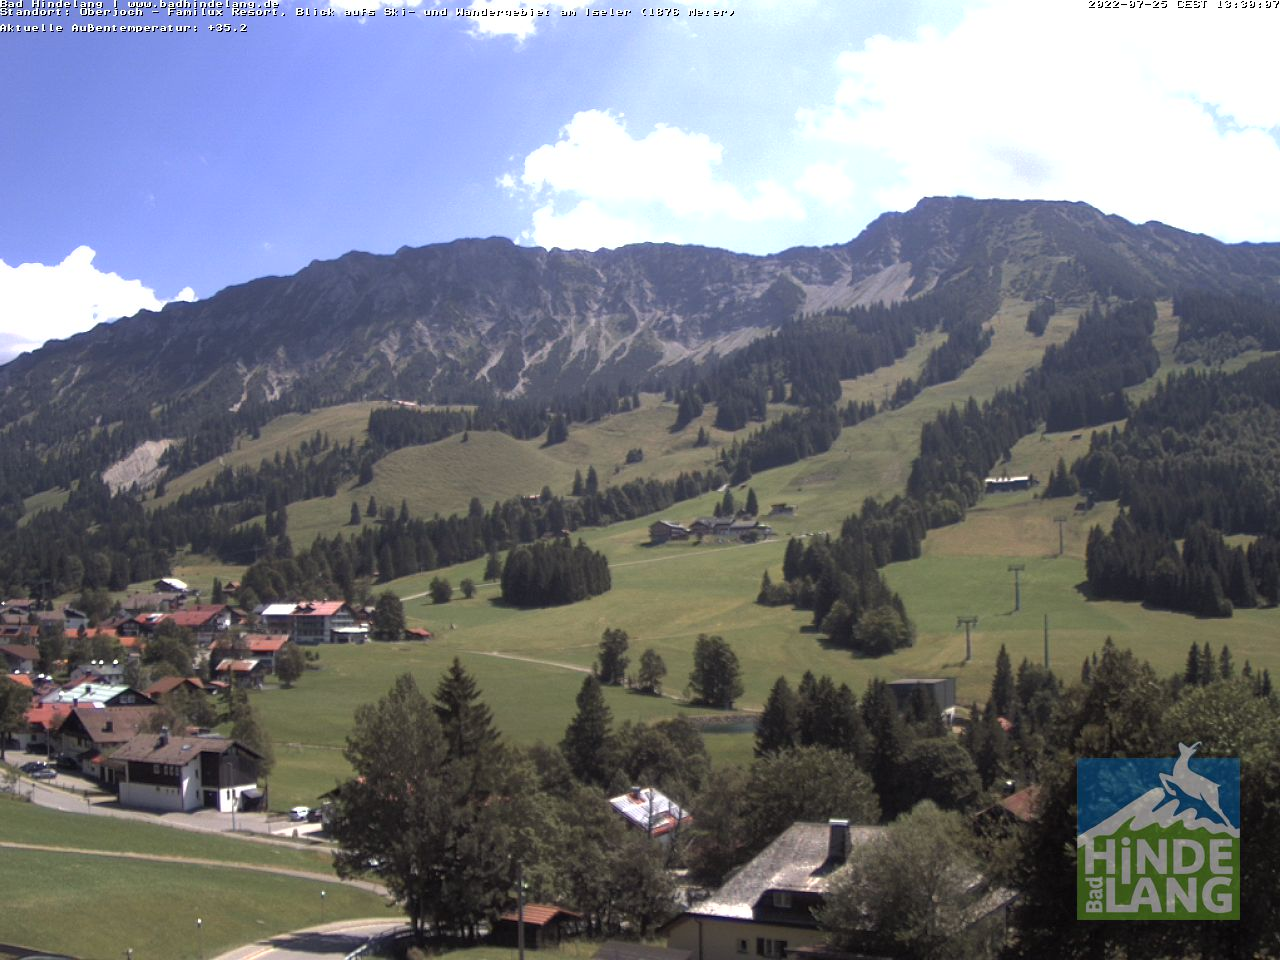 Webcam Bad Hindelang / Oberjoch: Kinderhotel im Allgäu